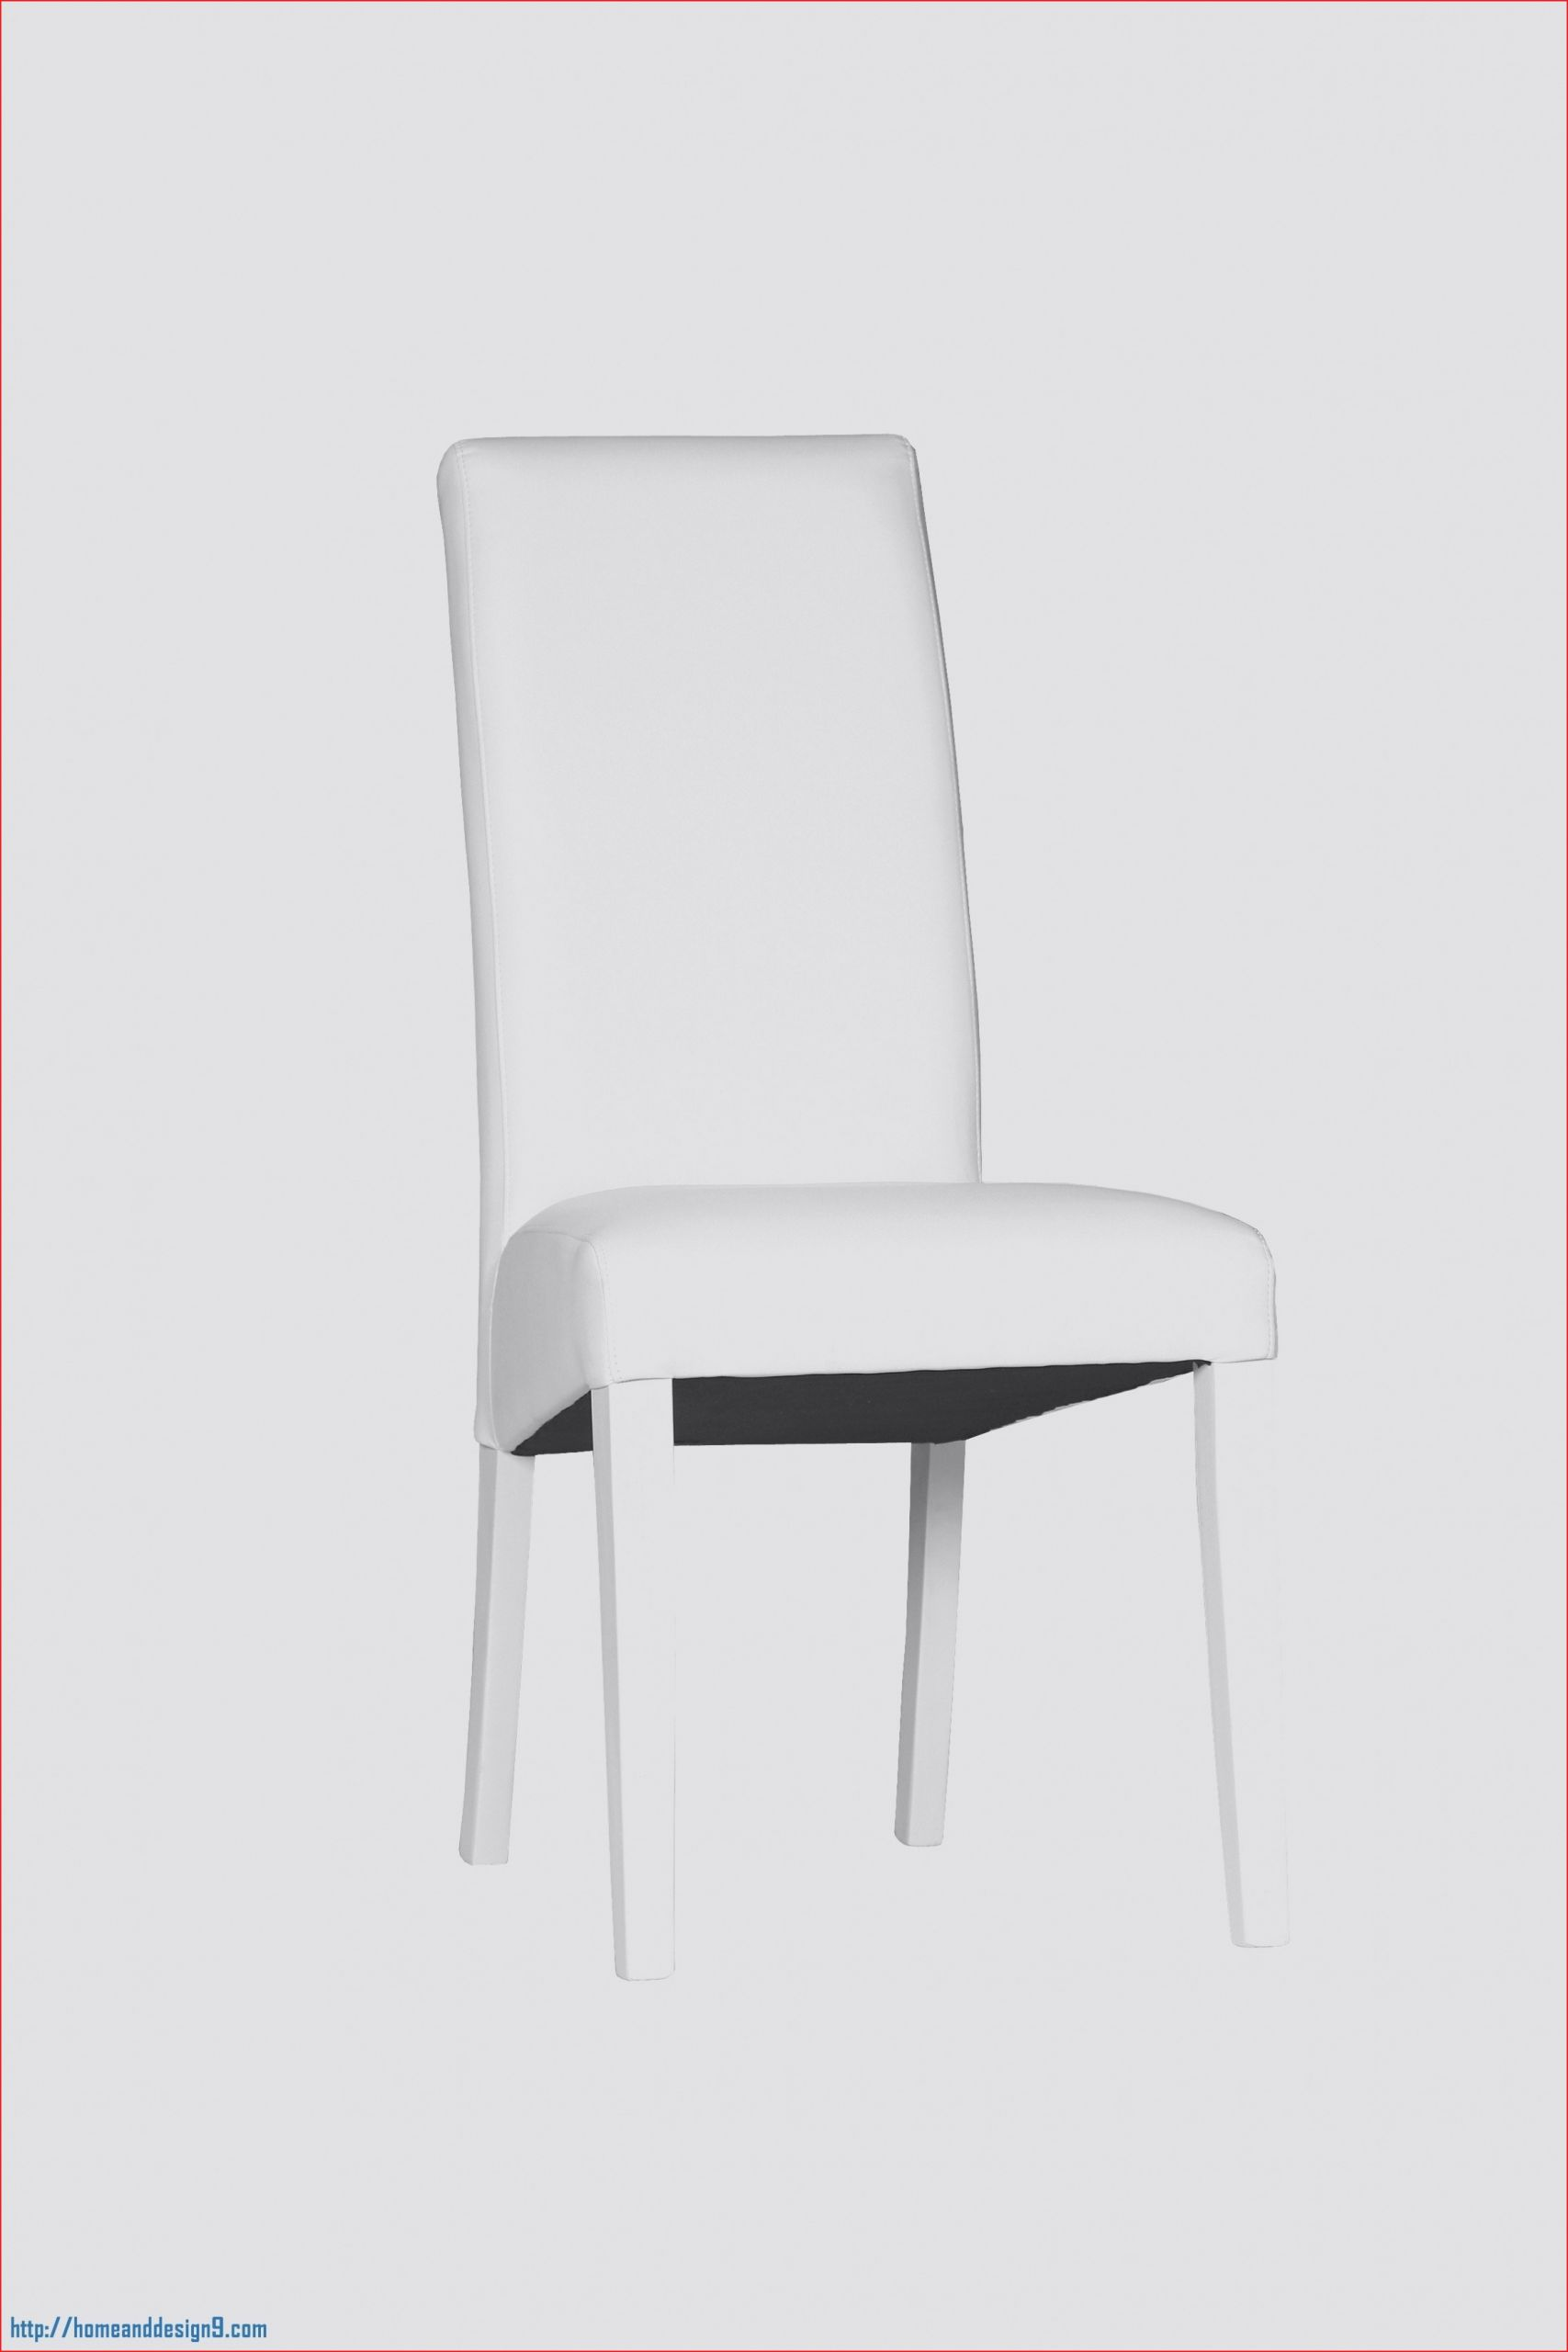 chaise disign chaise desing table et chaise design kavehome chaise 0d of chaise disign